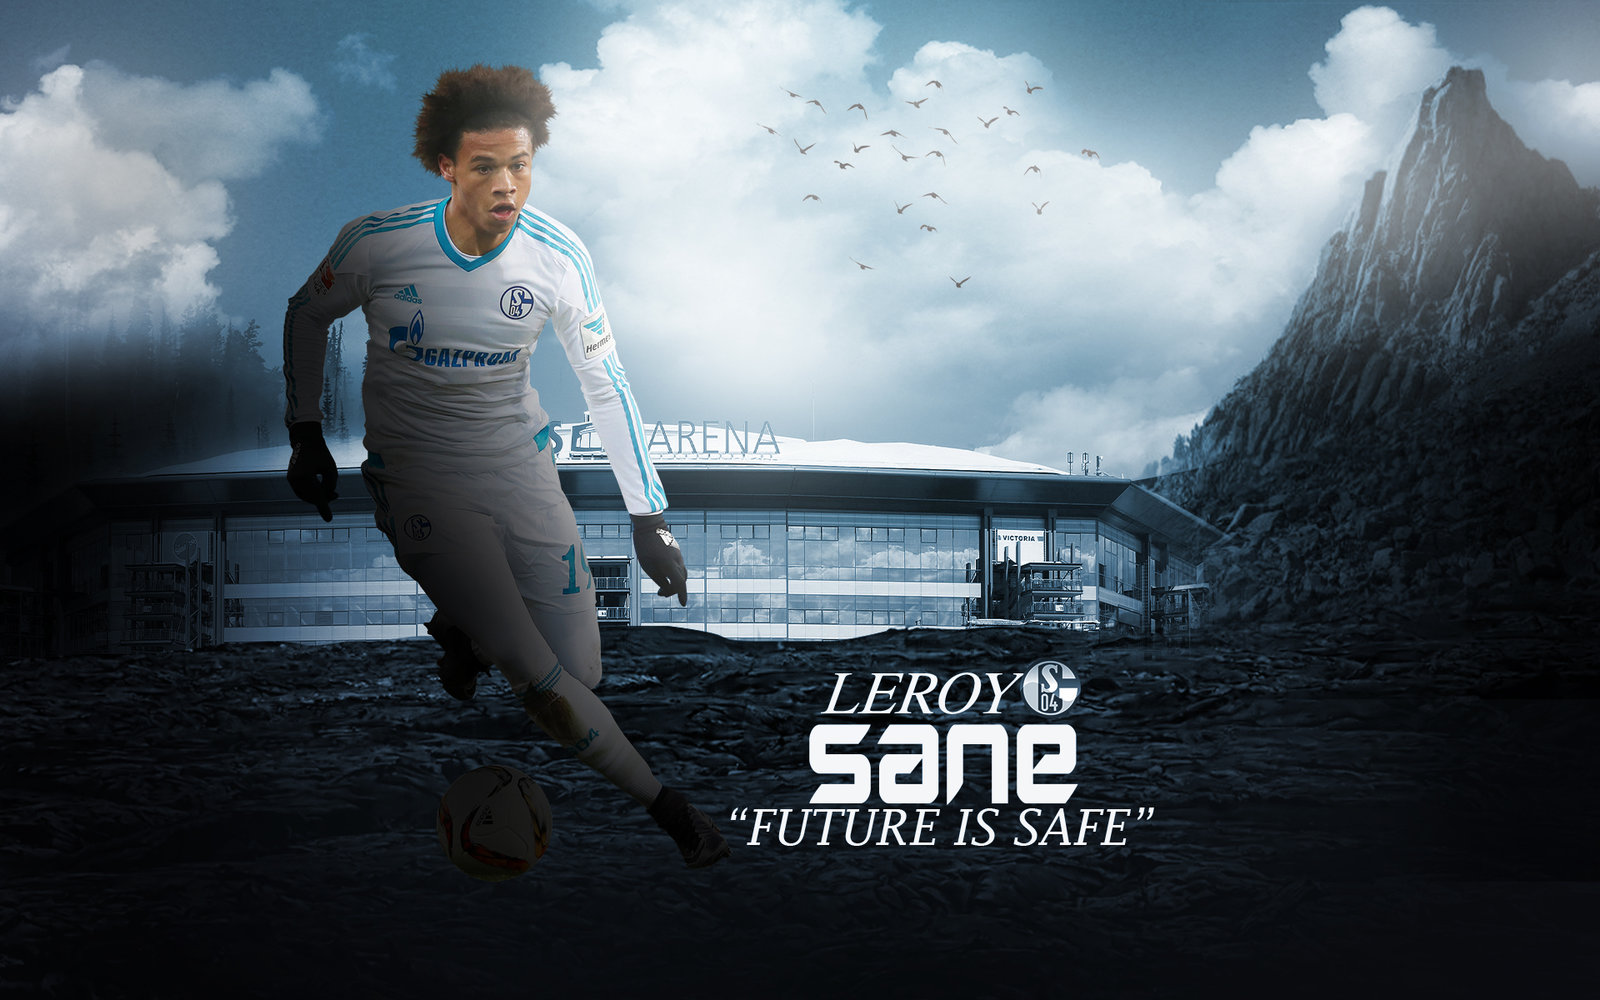 Hd Wallpaper Iphone X Leroy Sane Wallpapers Camaradasendoshermanas